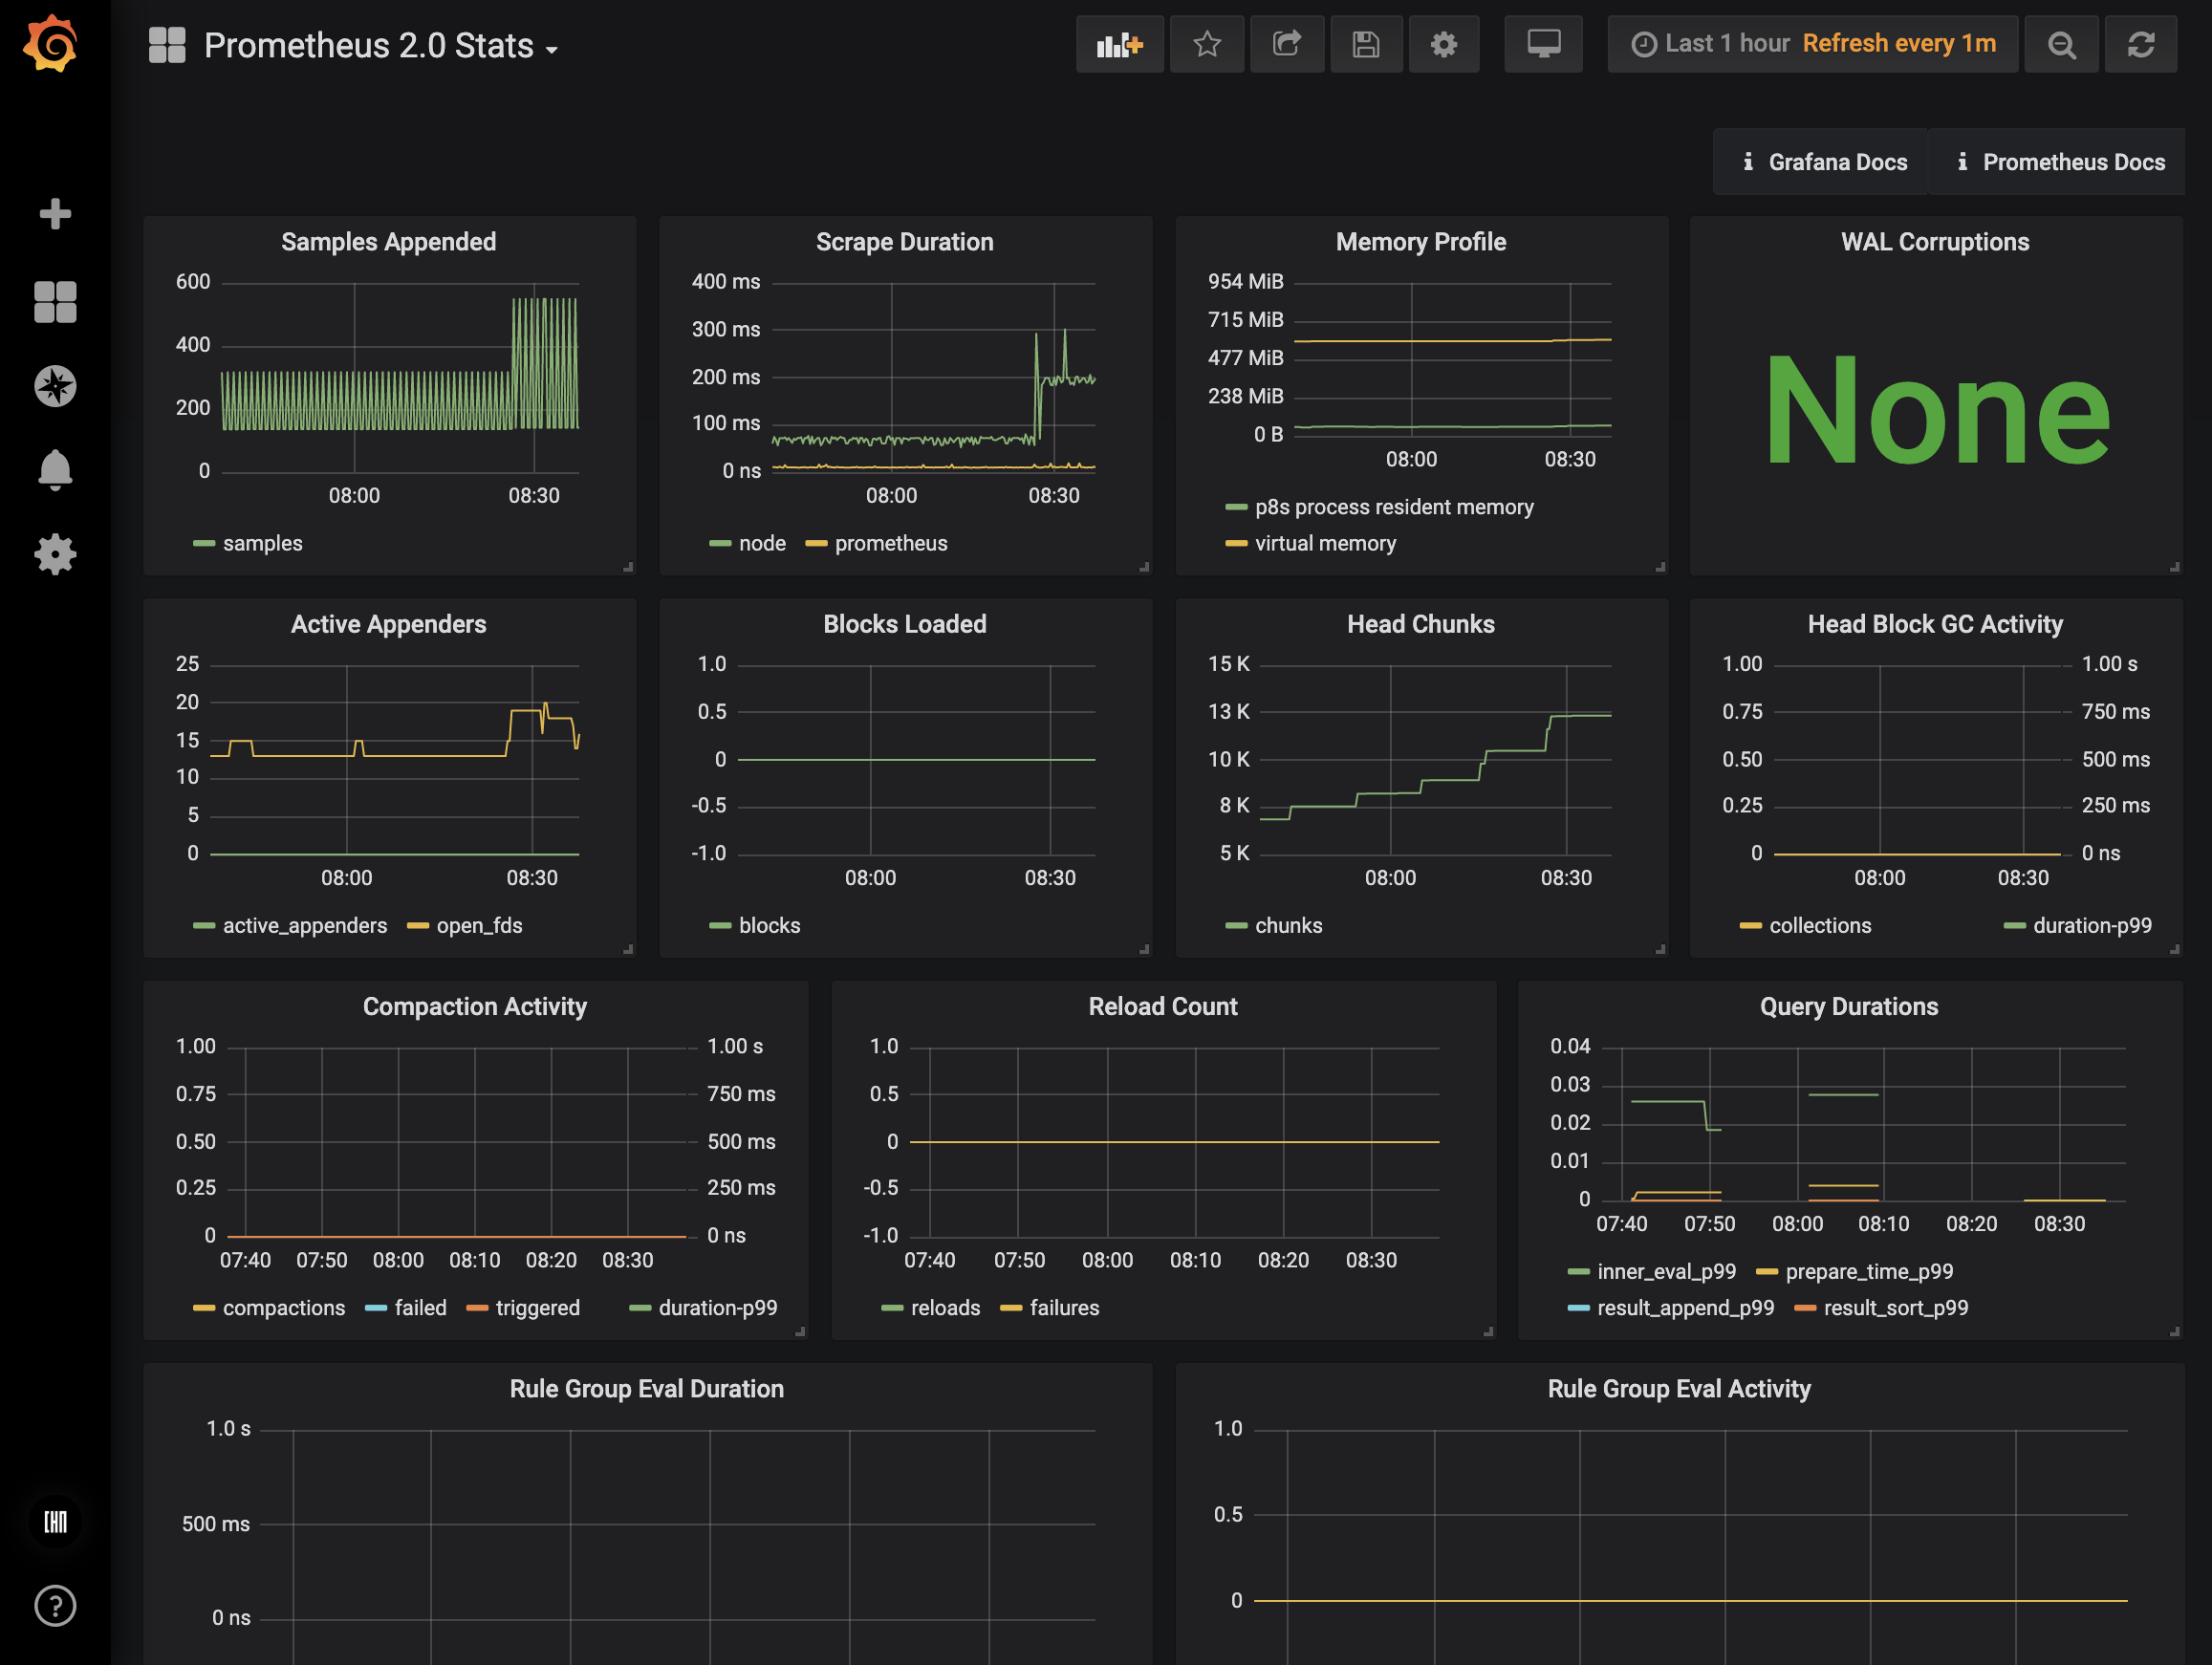 grafana-prometheus-dashboard